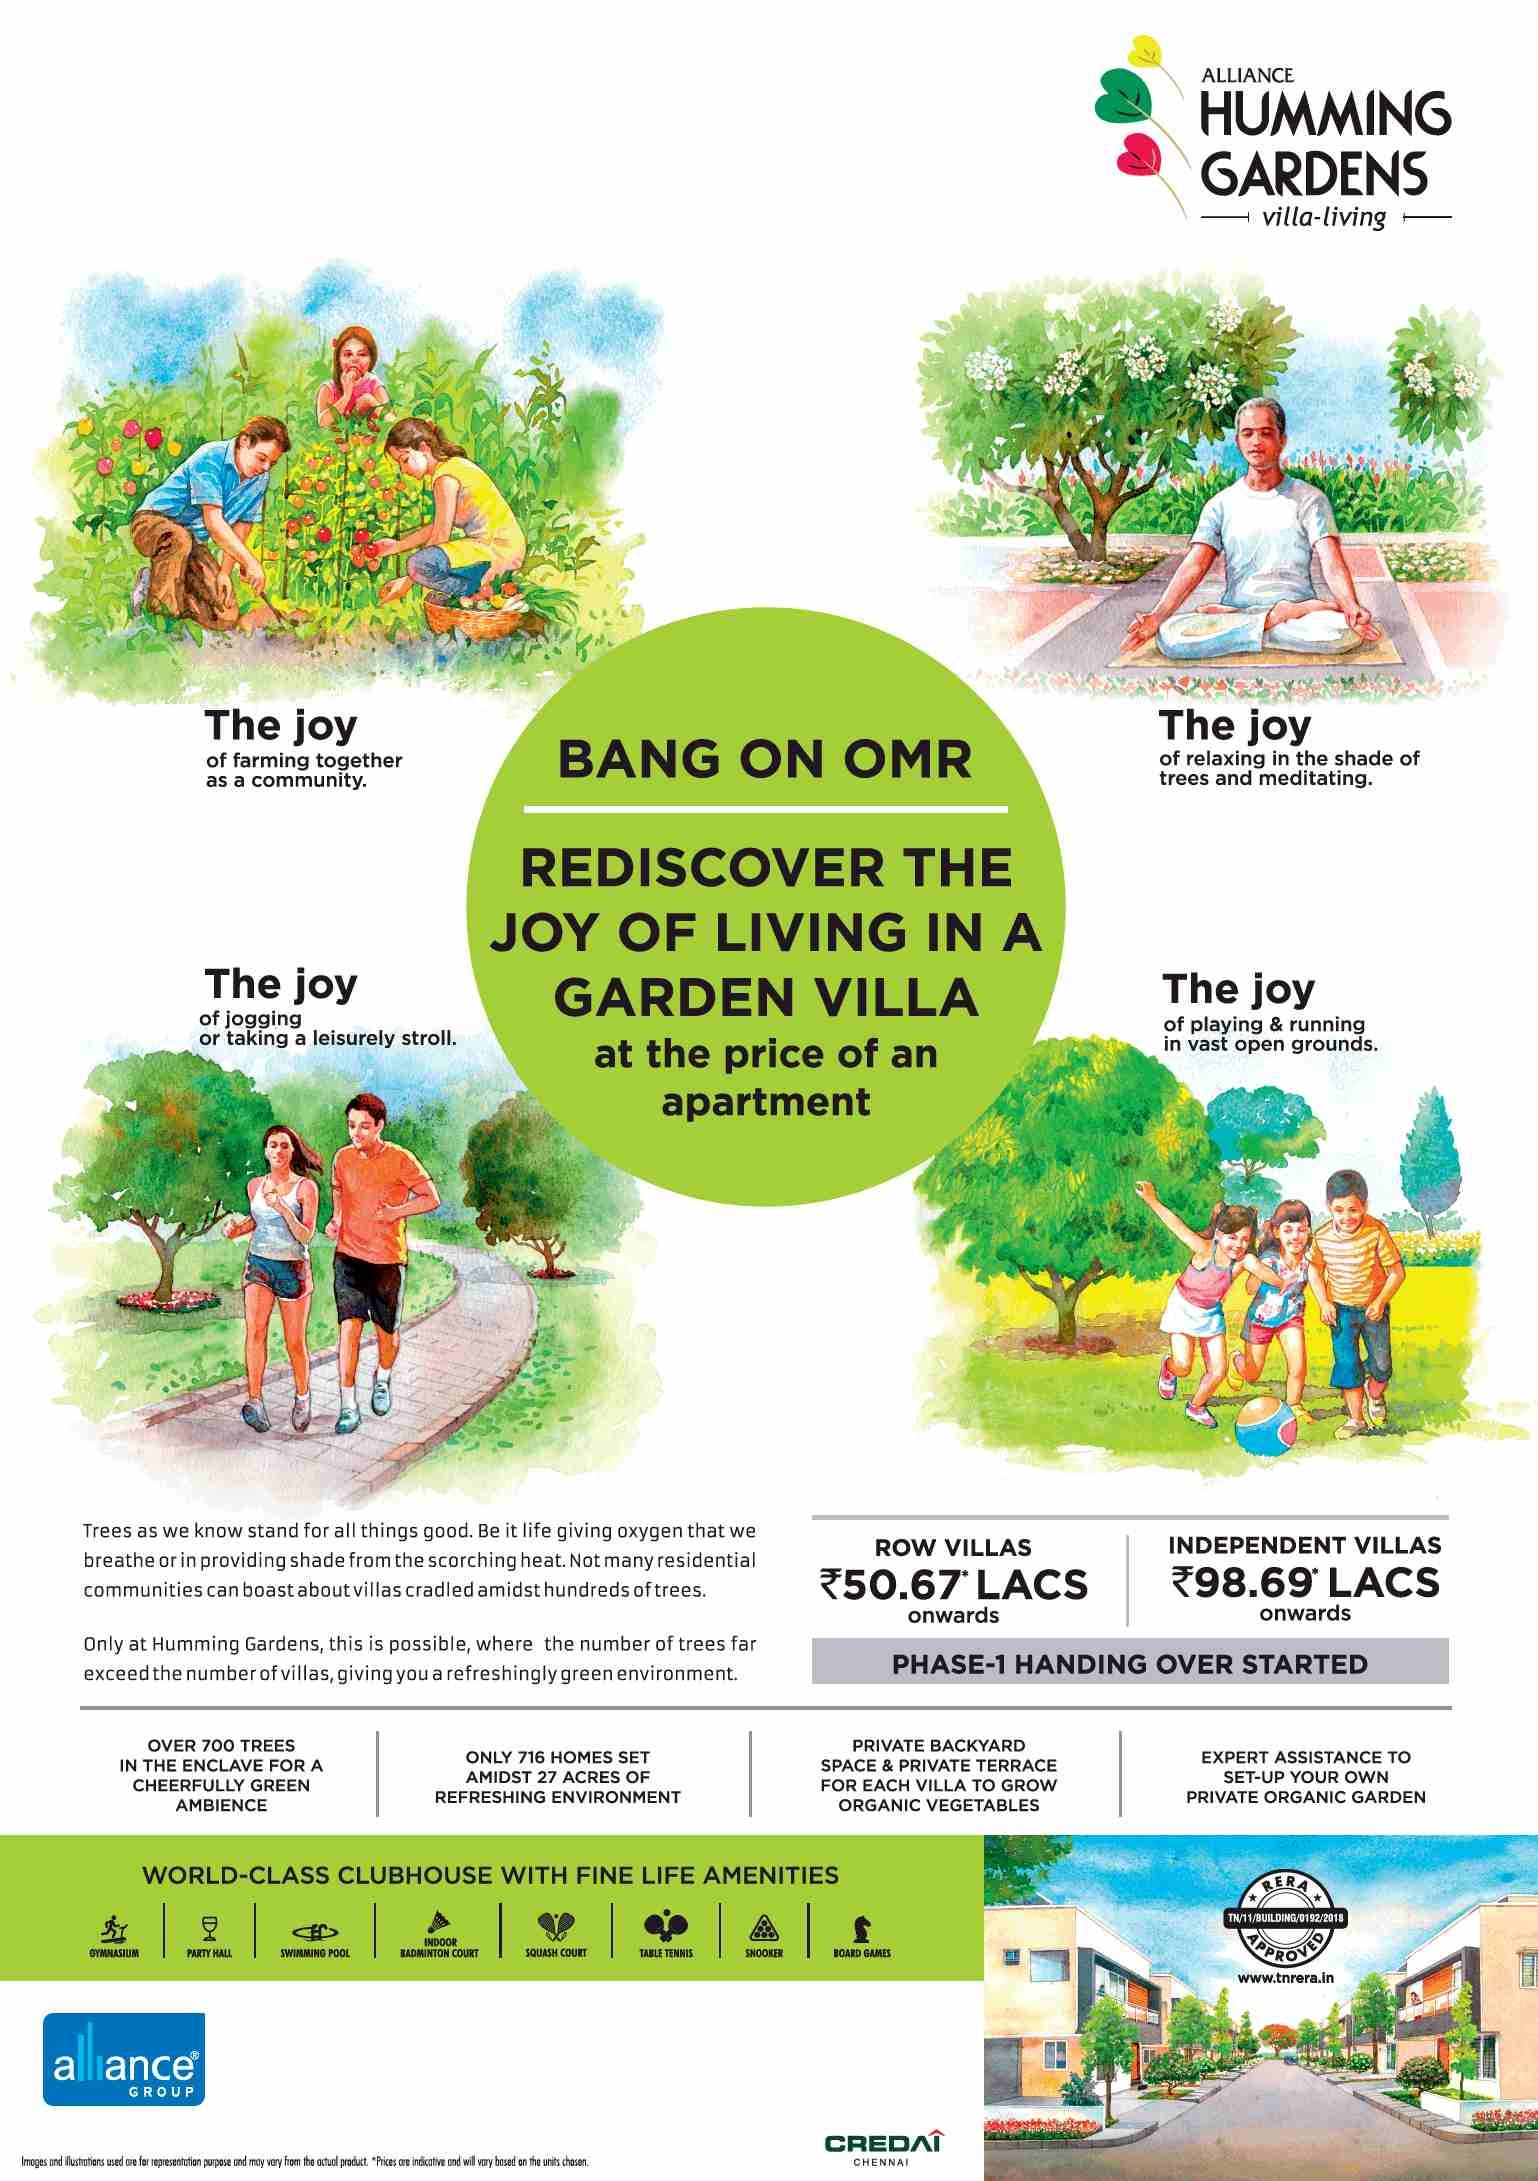 Rediscover the joy of living in a garden villa at Alliance